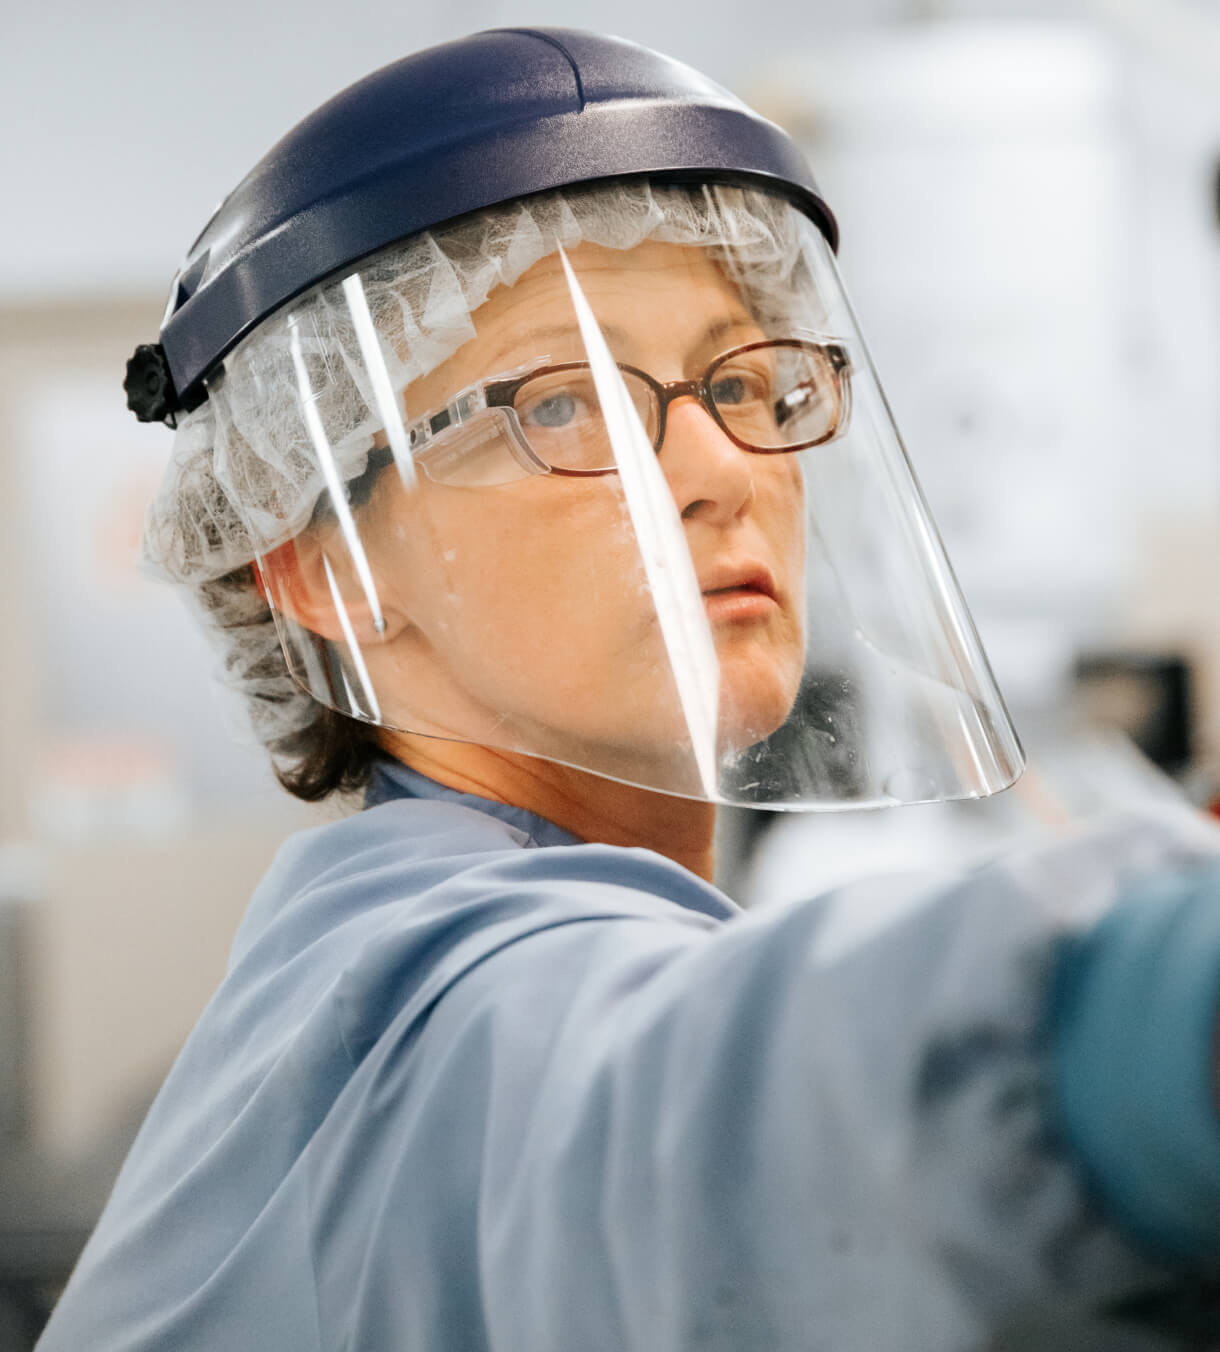 hitech employee with face shield